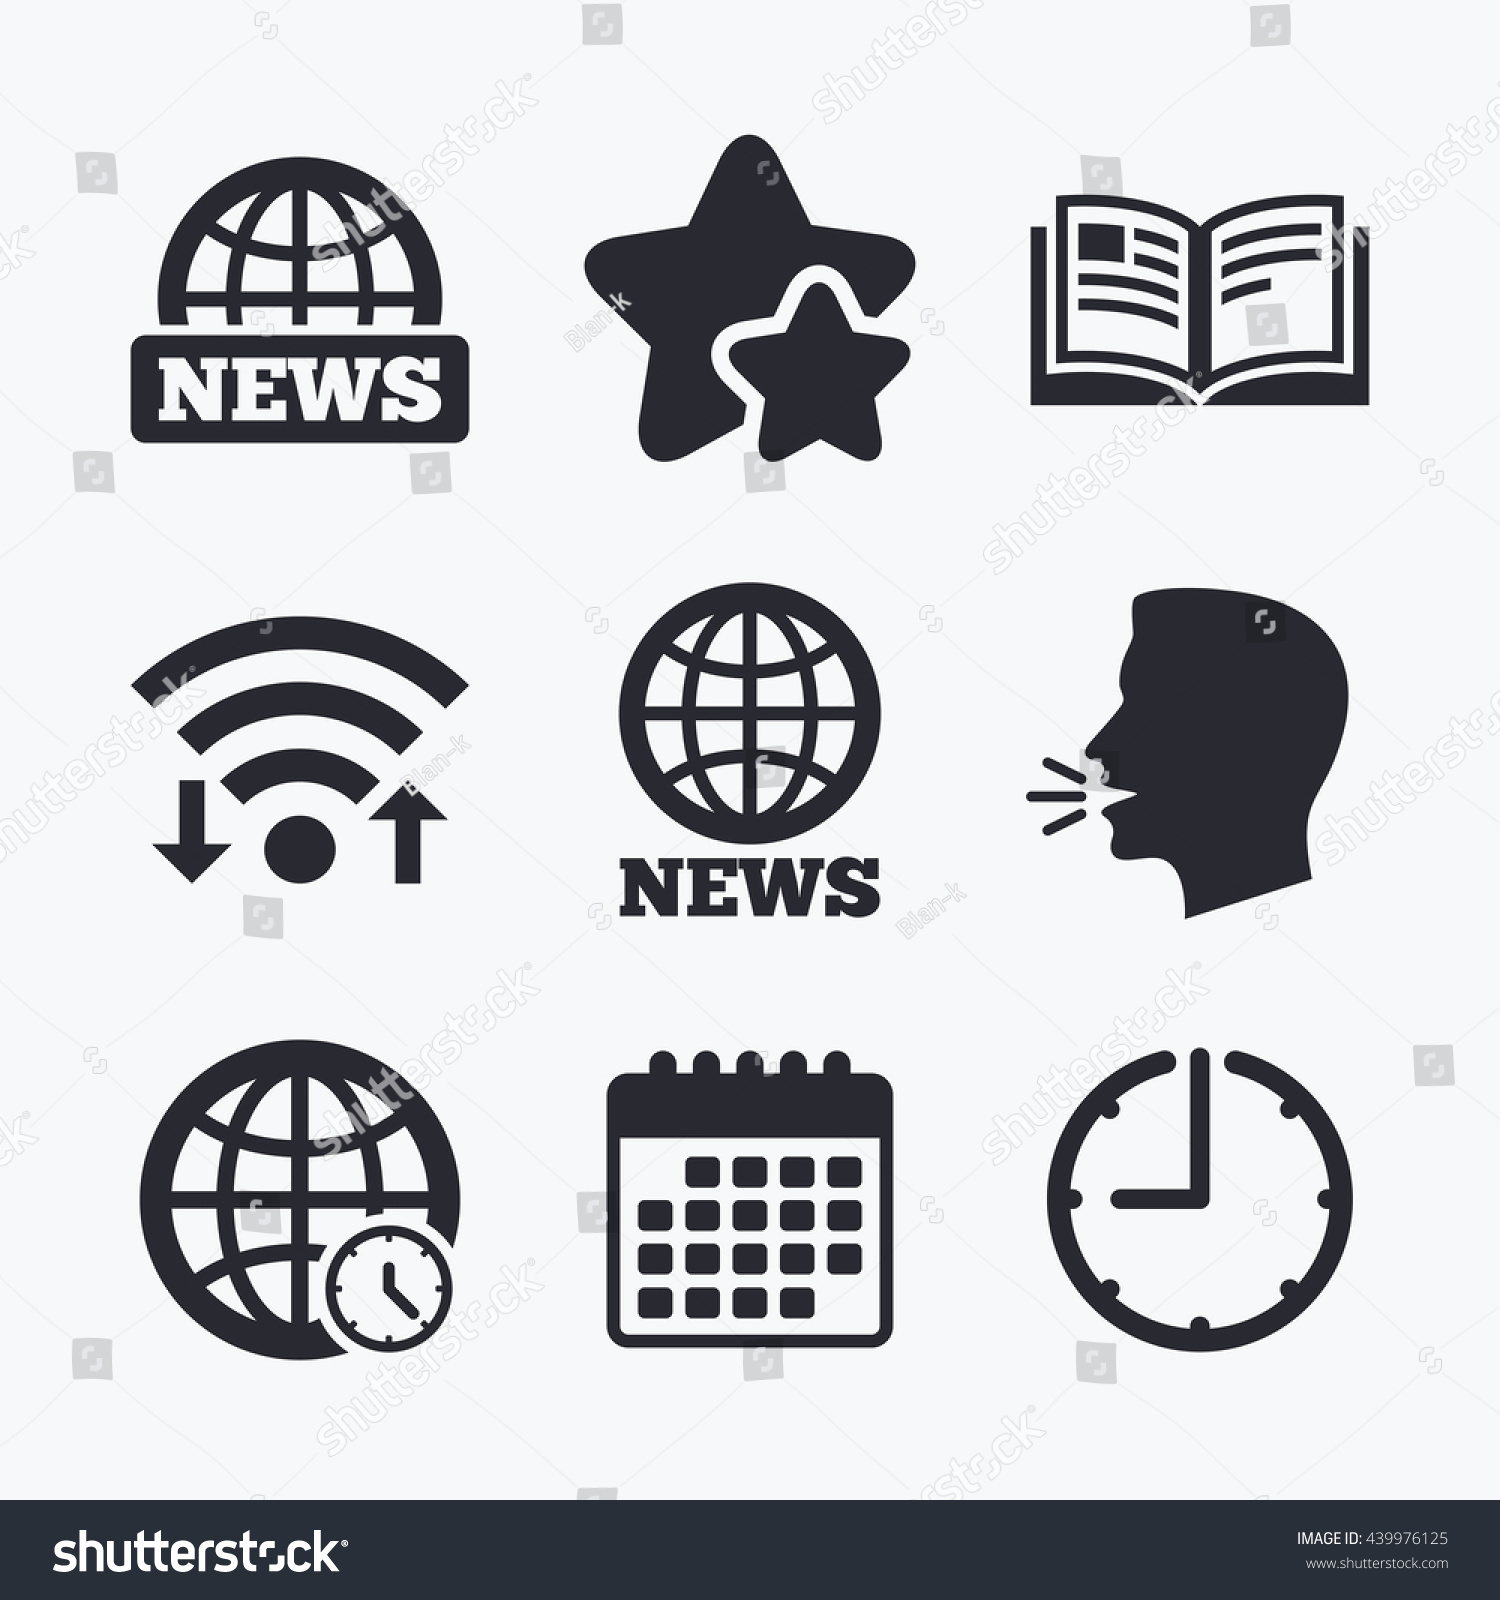 news icons world globe symbols open book sign education save to a lightbox